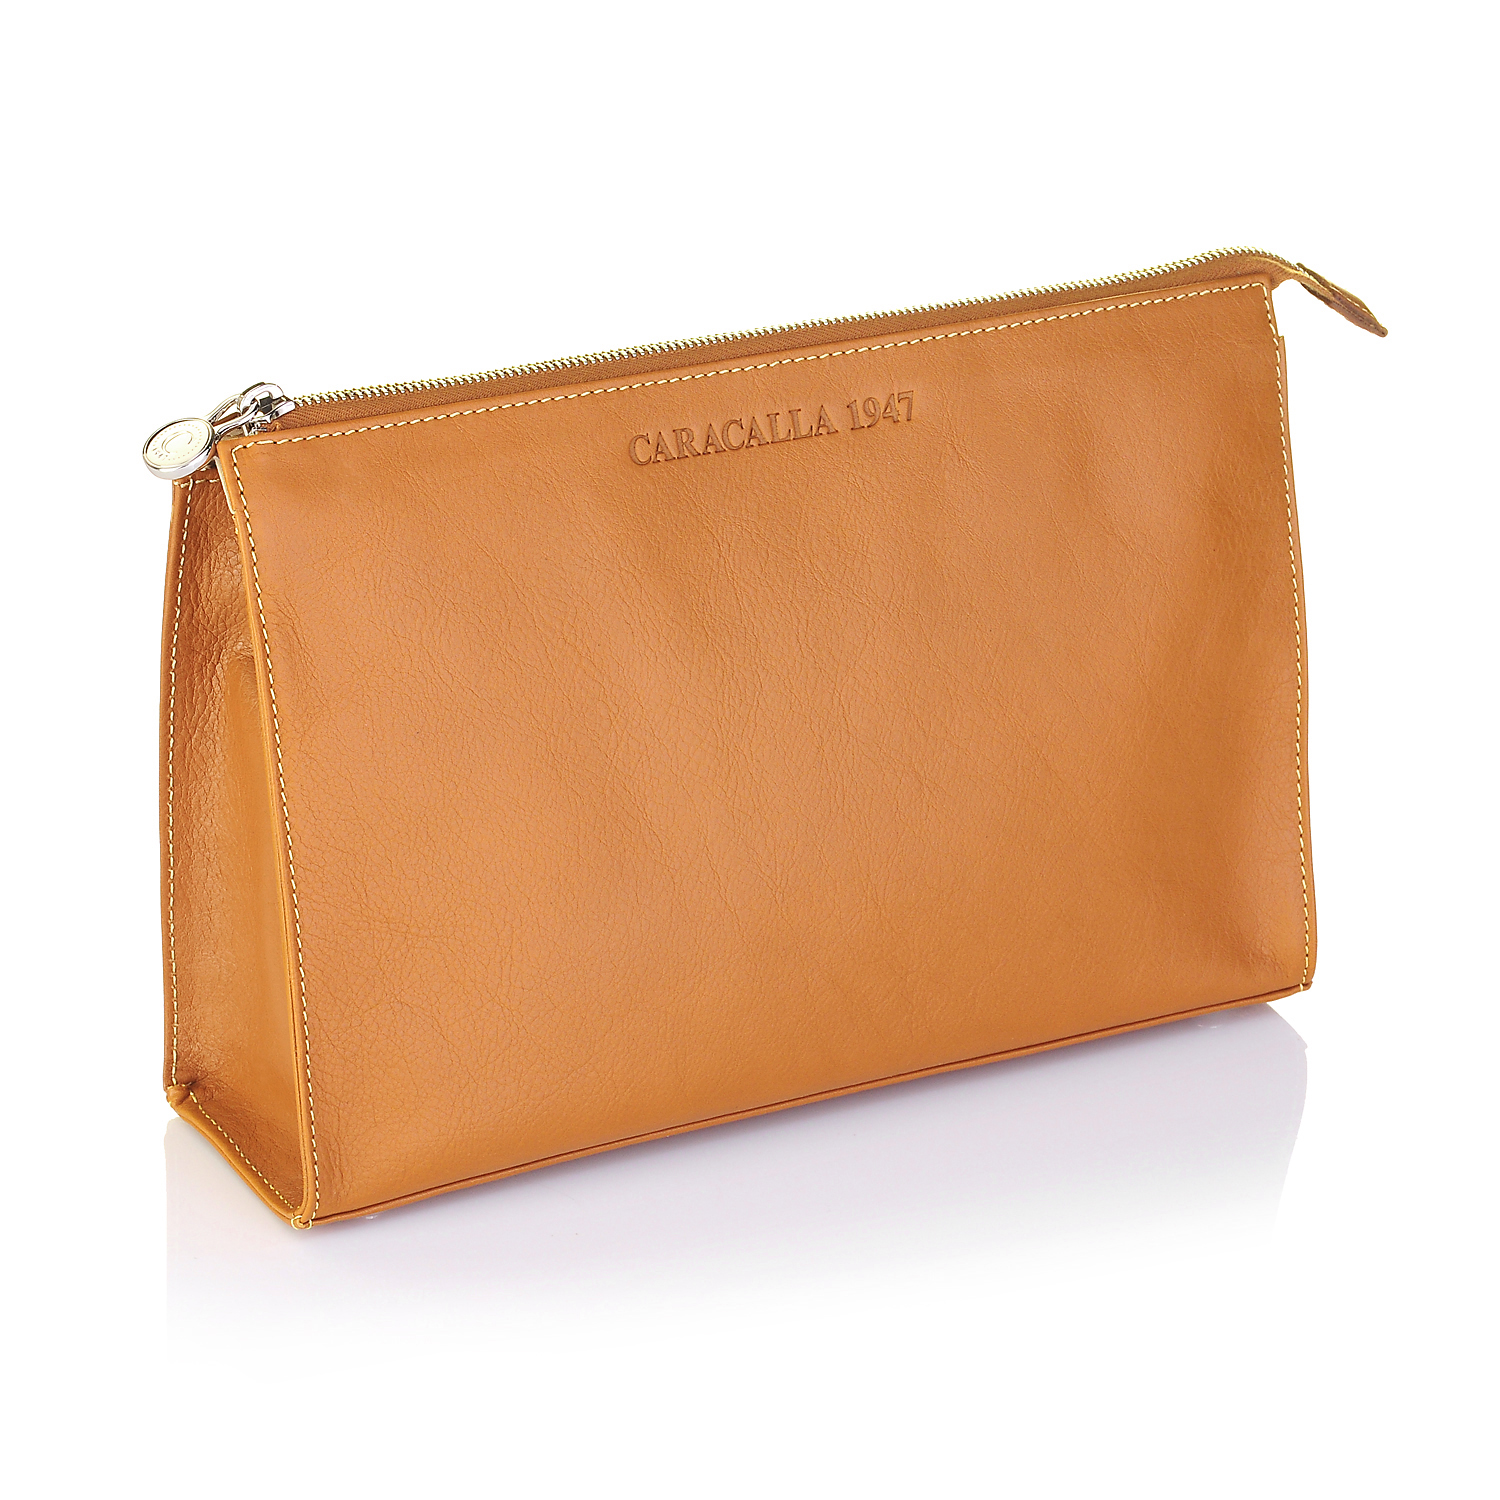 The Monaco Washbag by Caracalla 1947